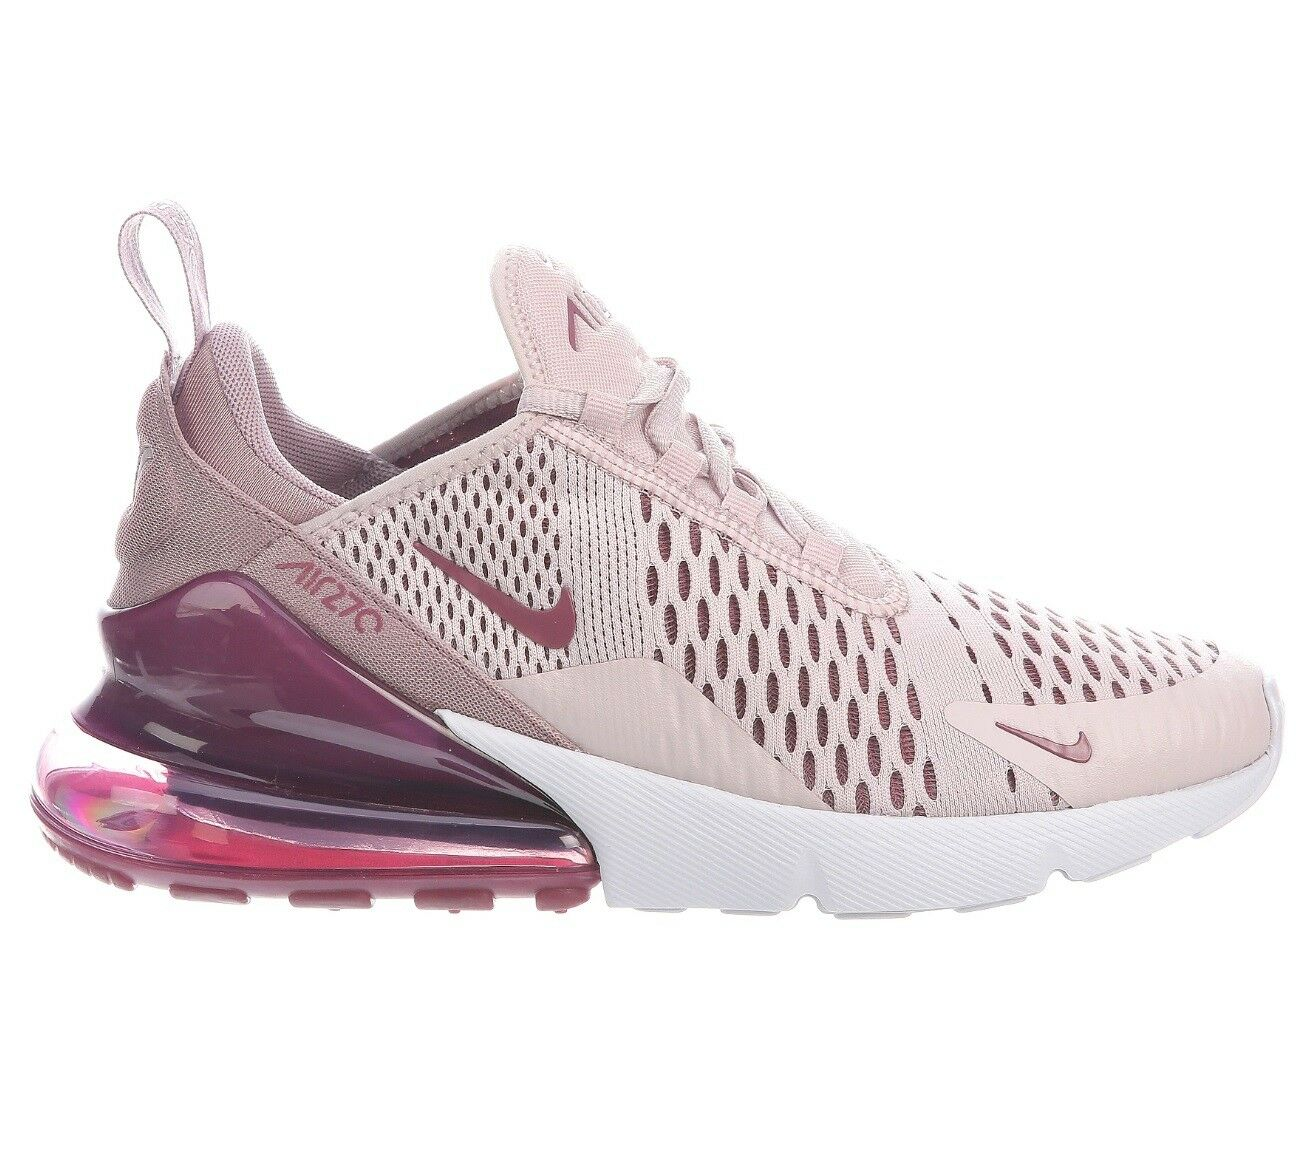 Nike Air Max 270 Womens AH6789-601 Barely Rose Pink Wine Running Shoes Size 8.5